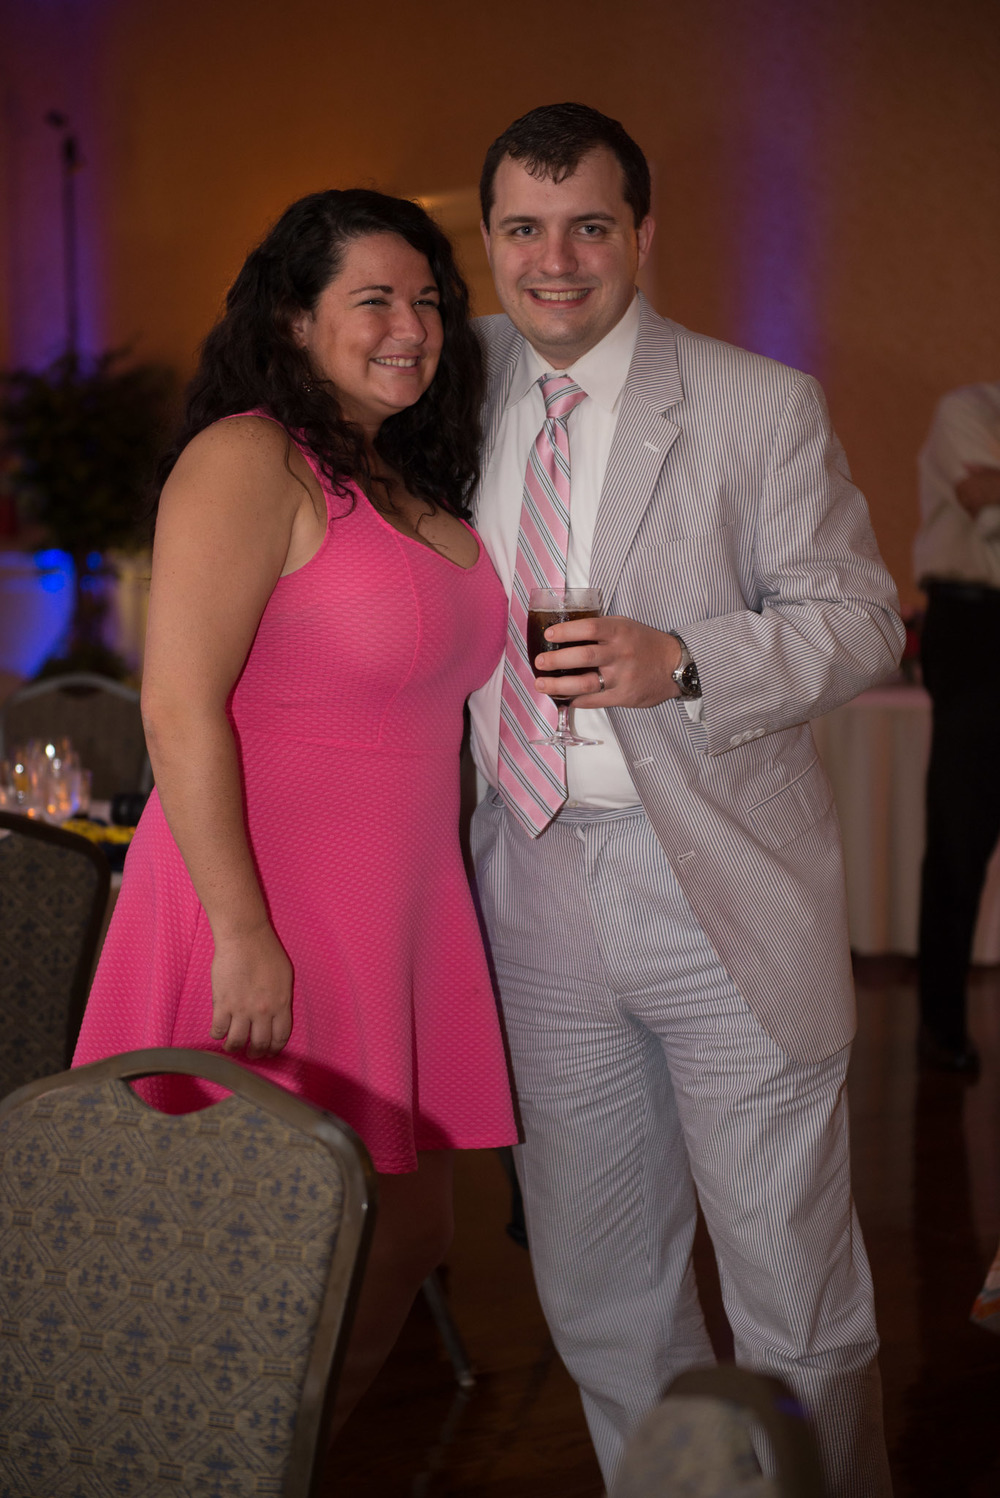 Nicole and Patrick Wedding-1844.jpg